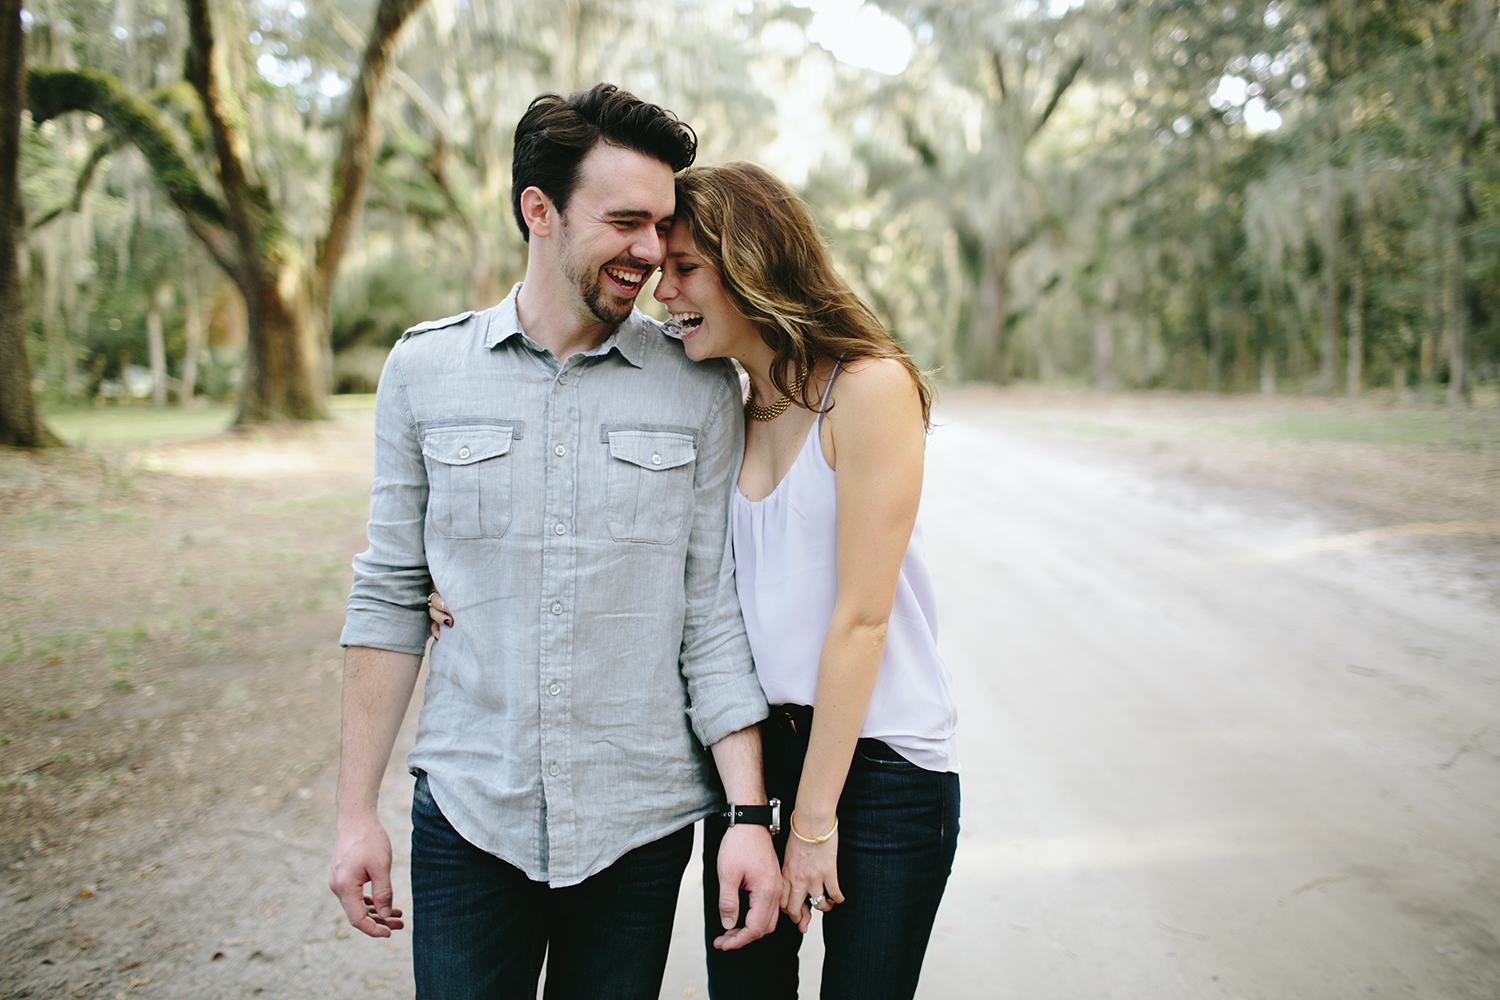 karliwillengaged - alicia white photography-101.jpg